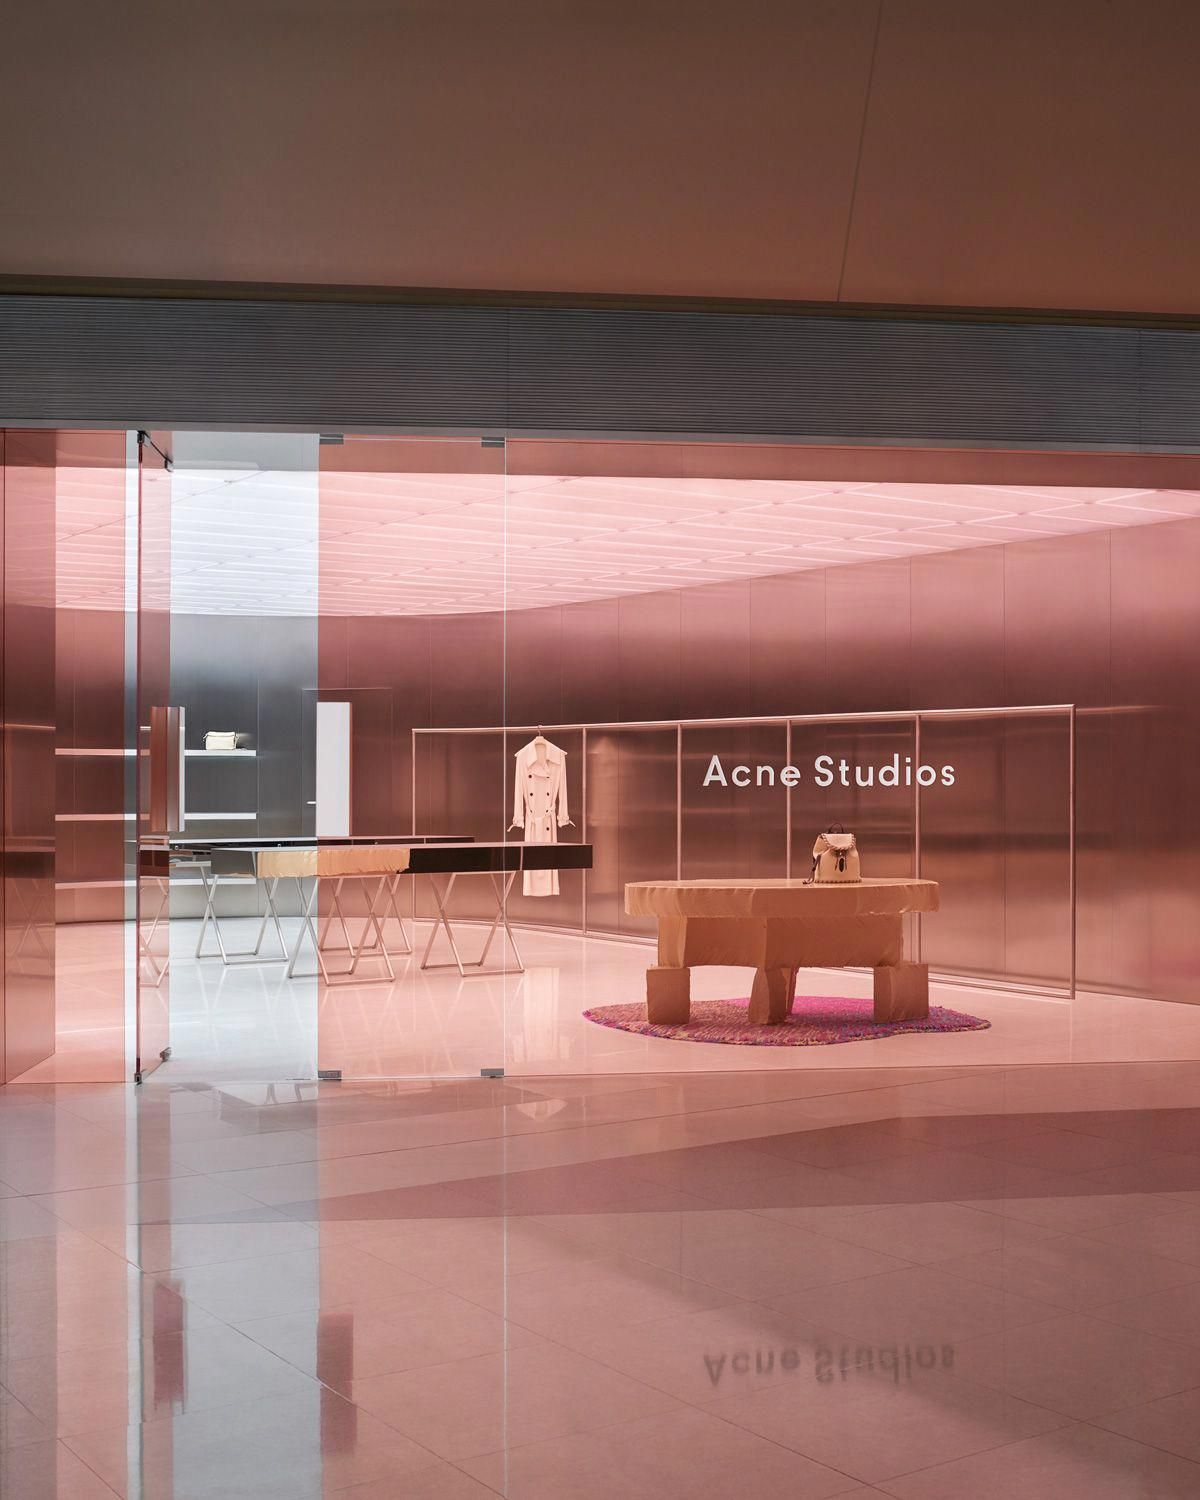 Acne Studios – Shop Ready to wear, accessories, shoes and